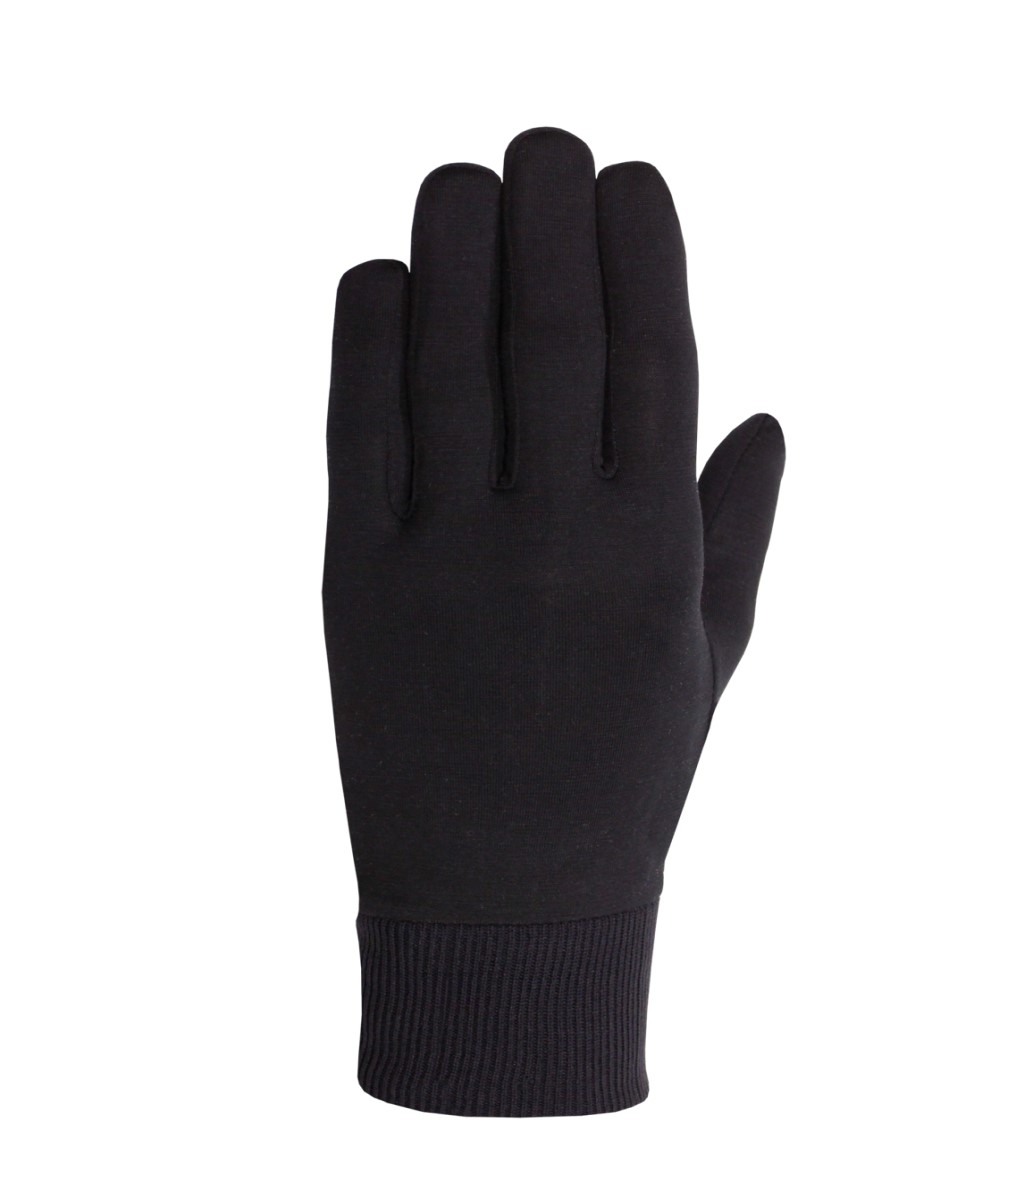 Seirus Arctic Silk glove in Black